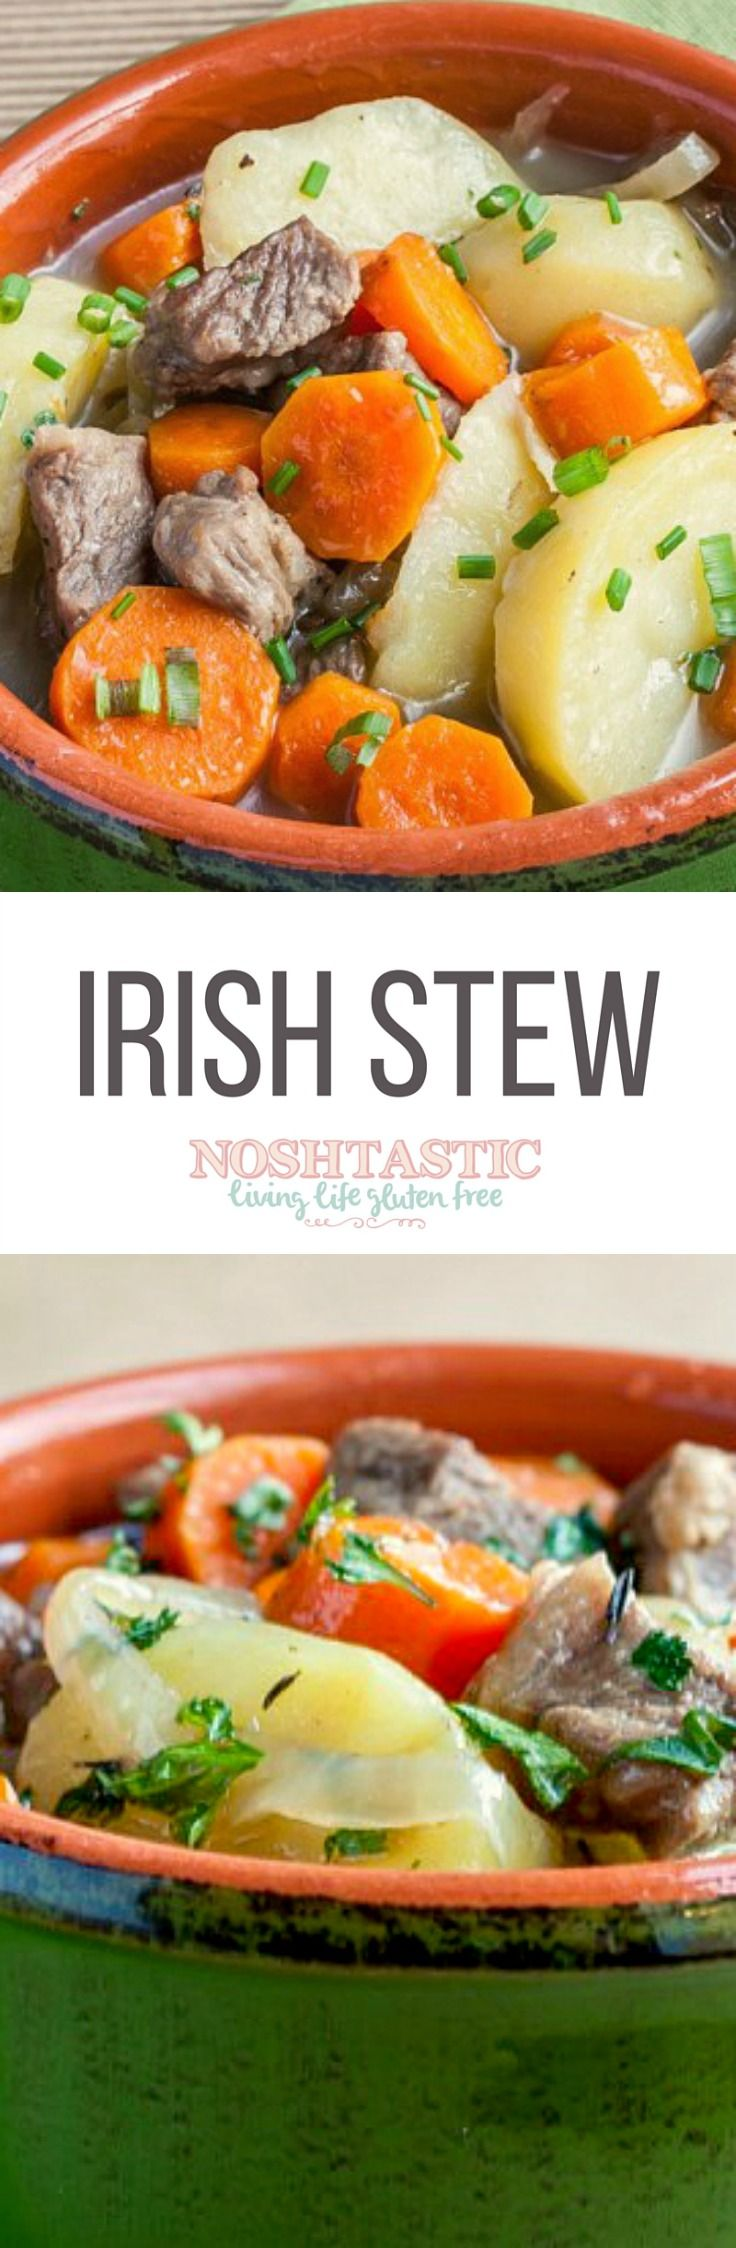 You don't need to wait until St Patrick's Day to enjoy this traditional Gluten Free Irish Stew recipe, delicious at any time of the year! Paleo and Whole30